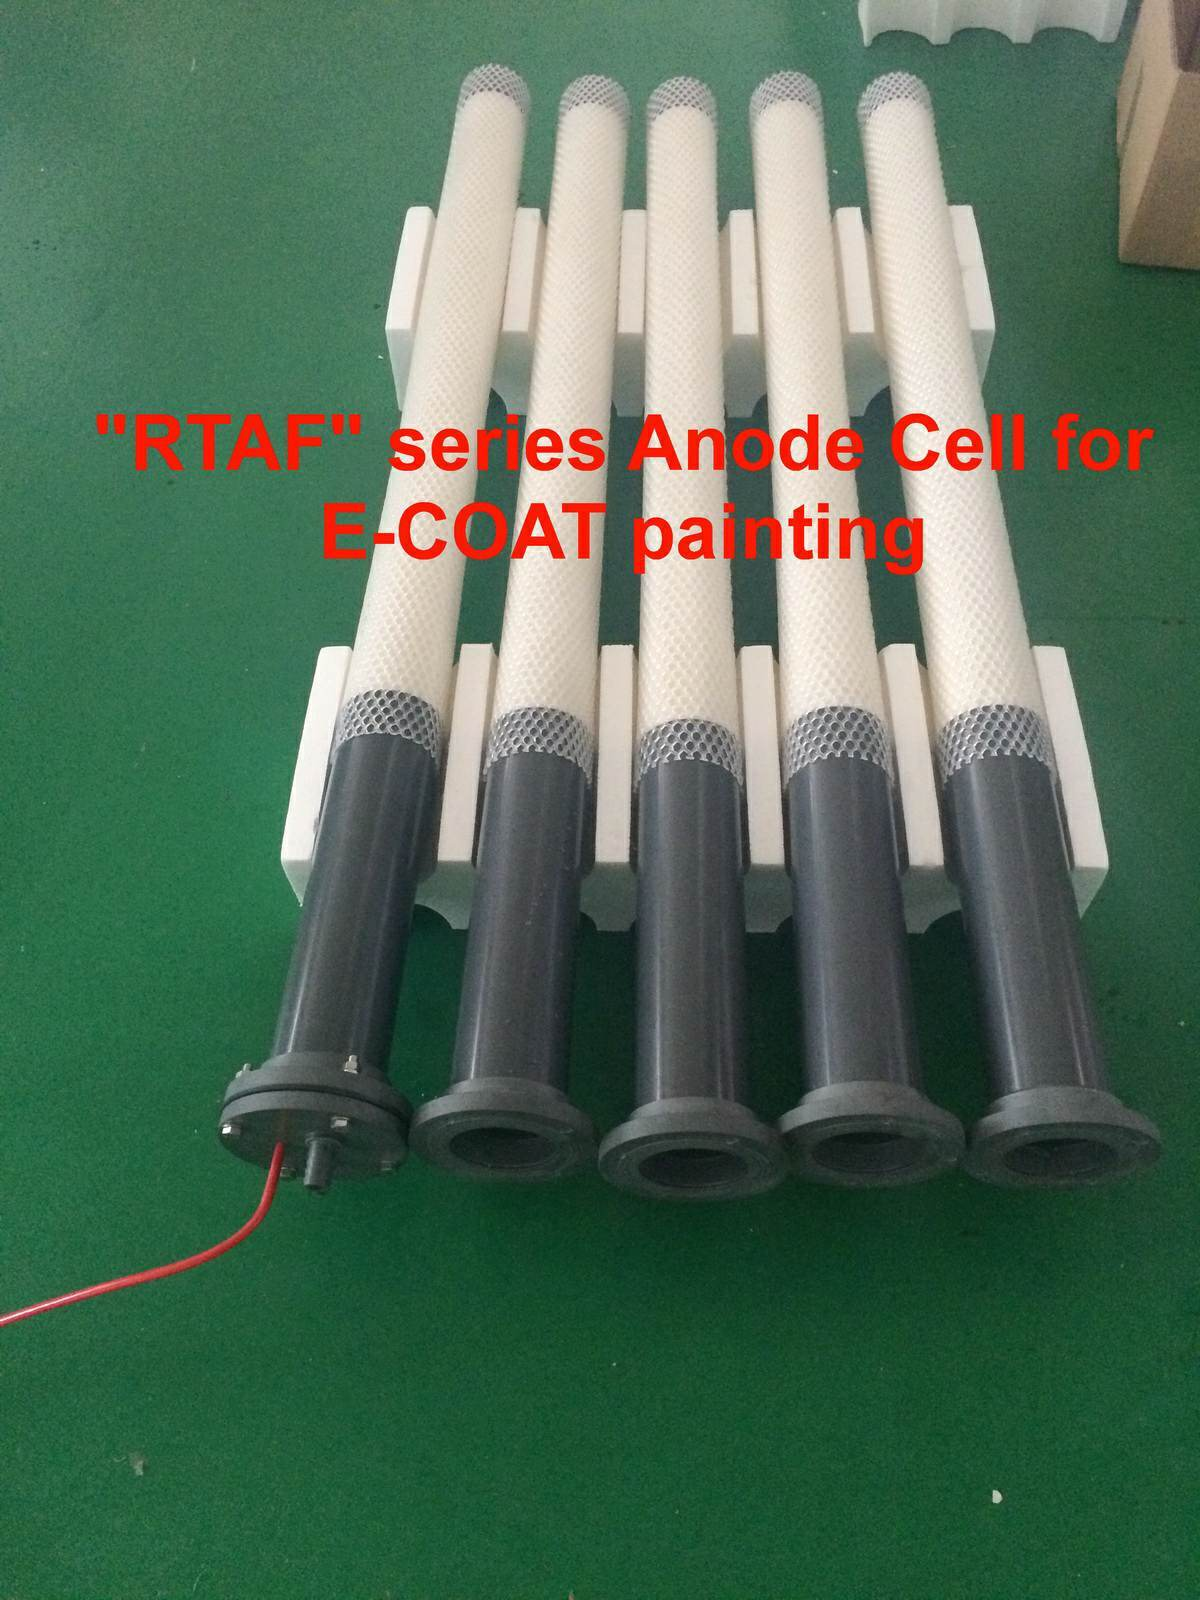 Closed Style Tubular Anode Cells